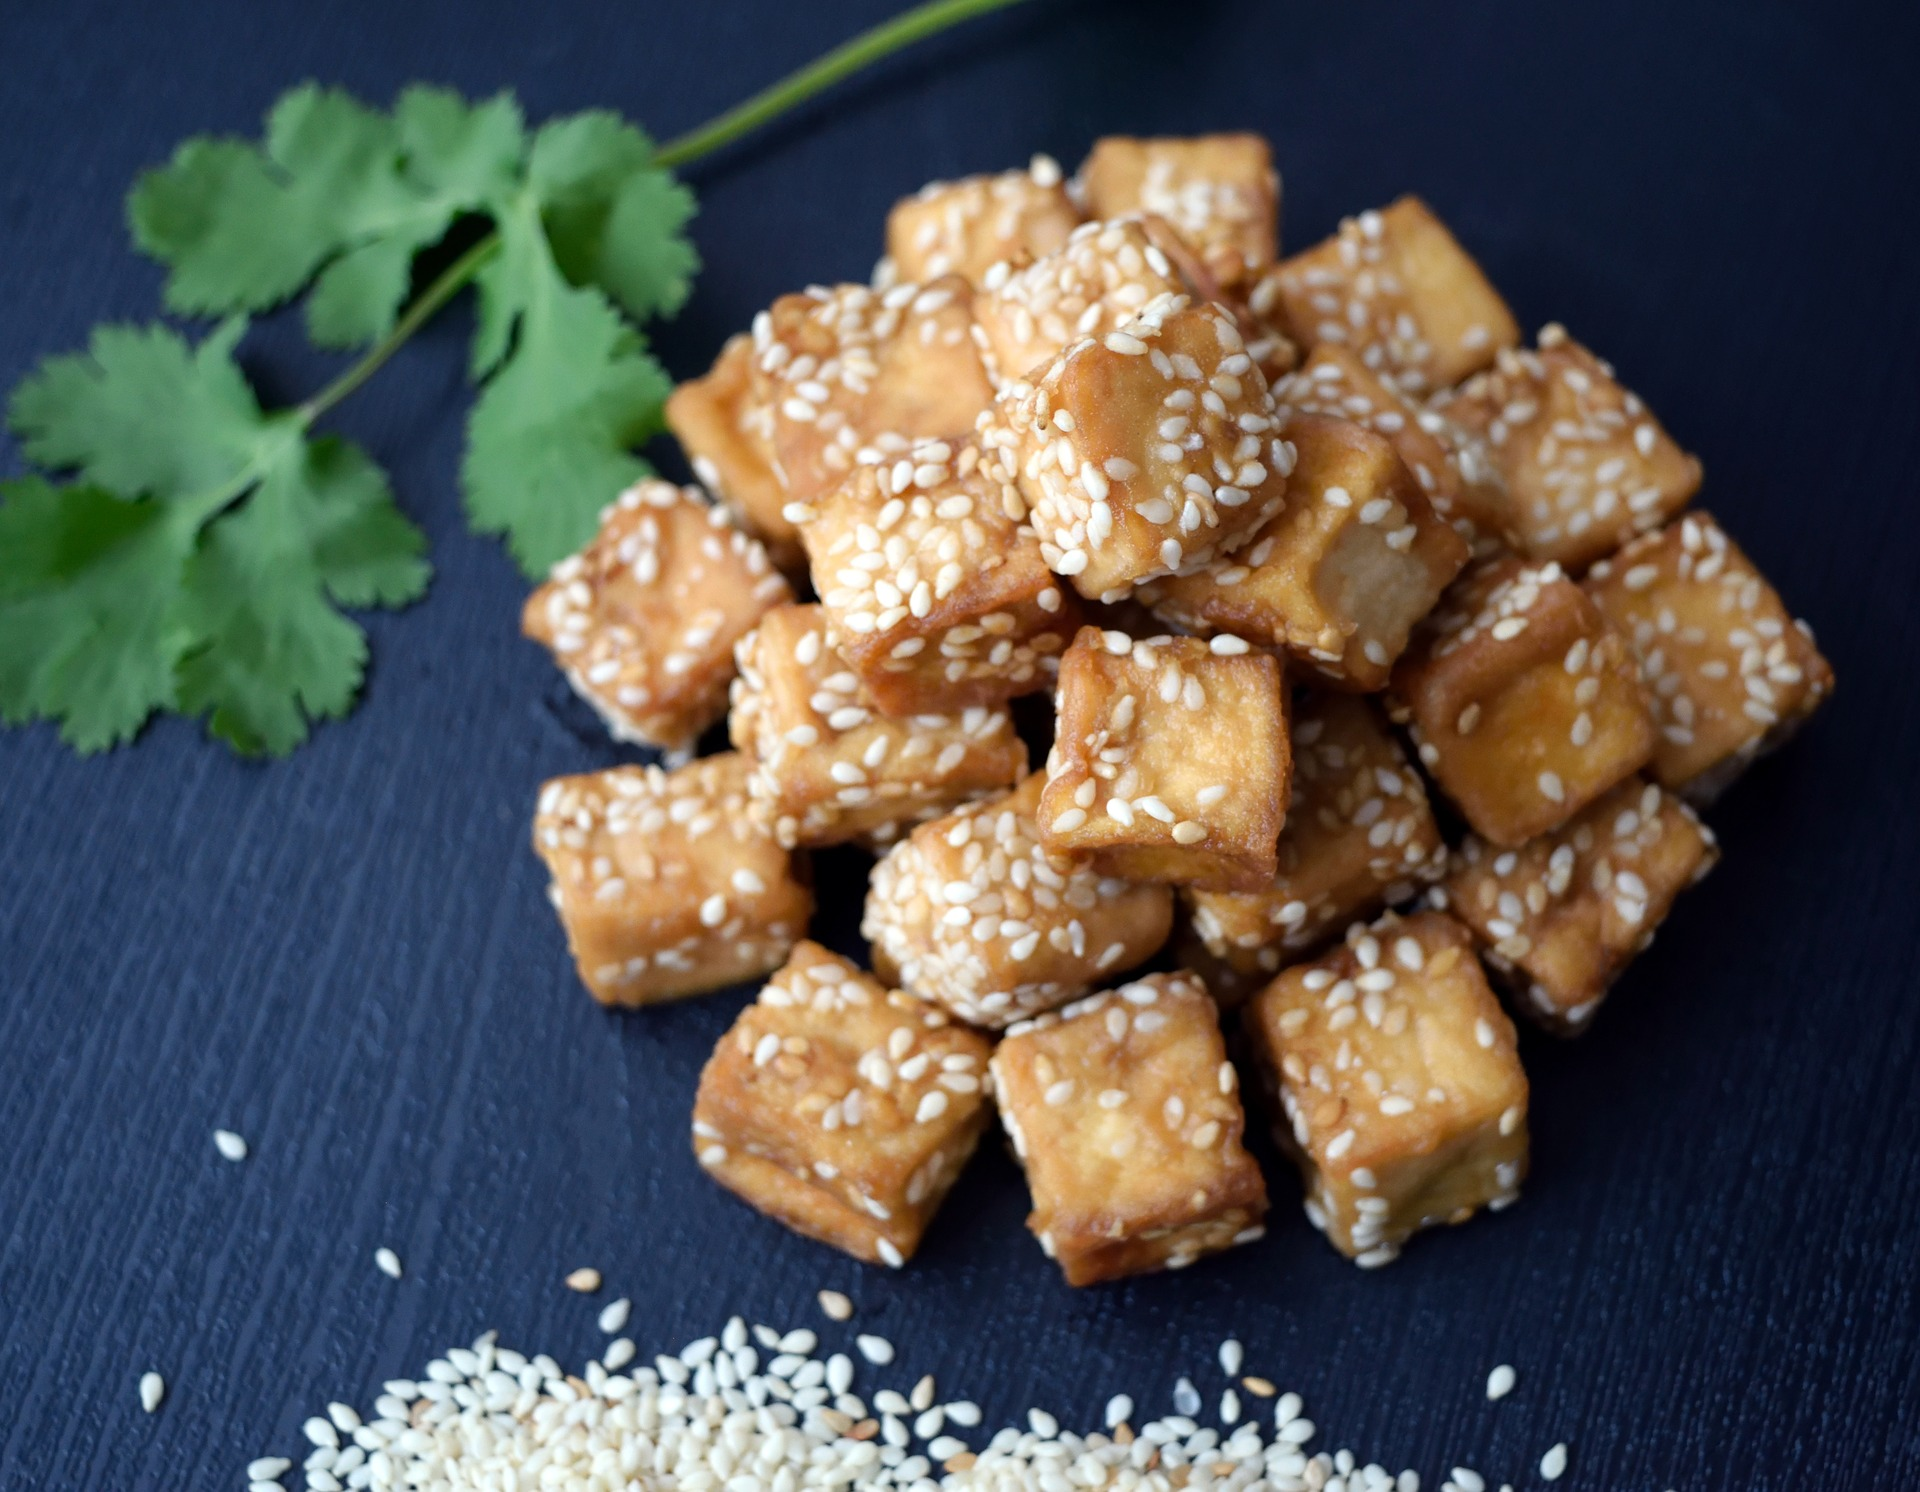 tofu with sesame seeds, garnish of parsley in the background